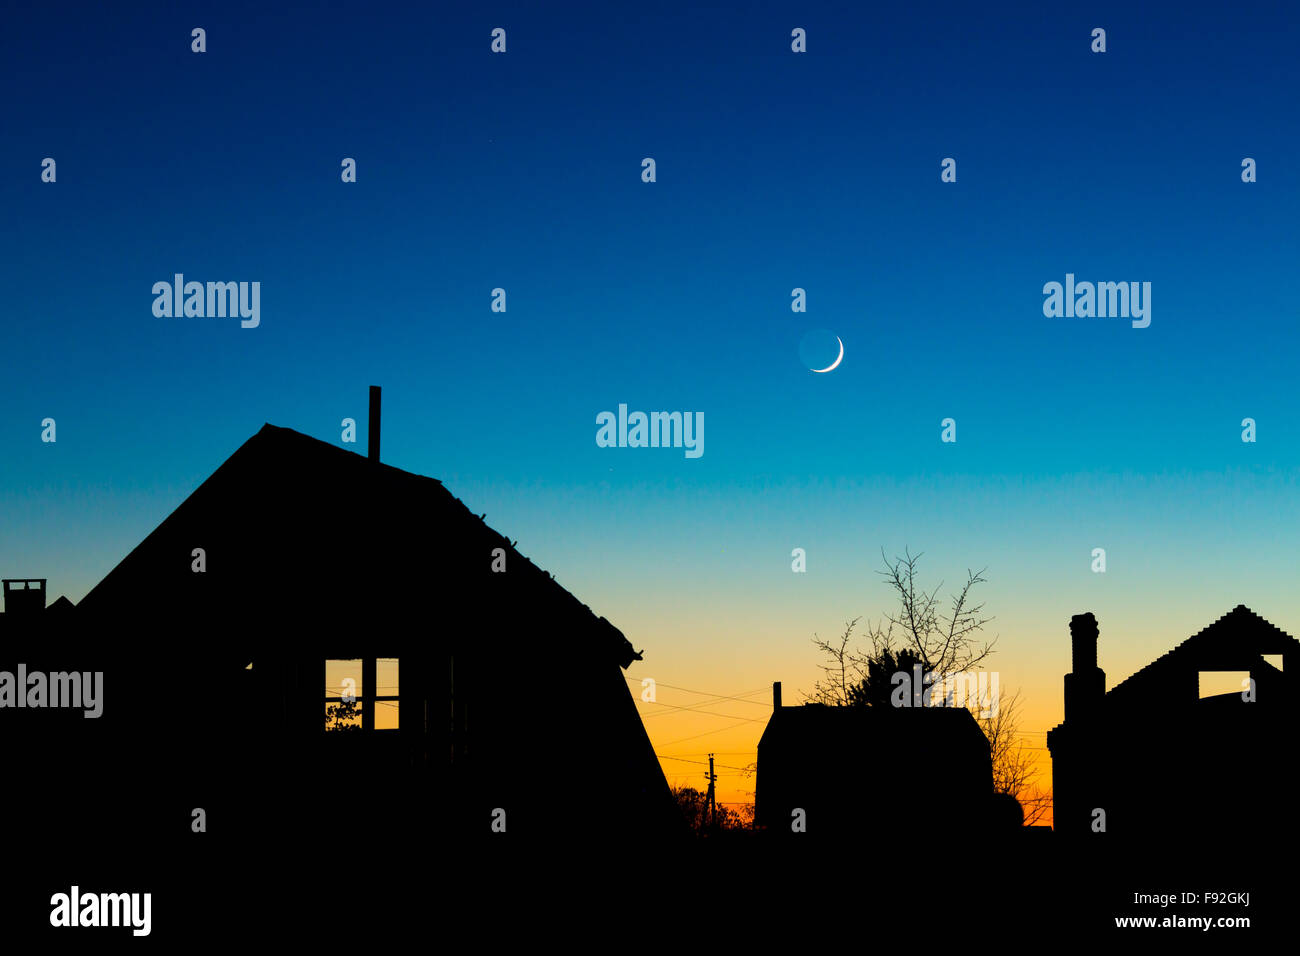 Roofs silhouettes against the night sky with new moon - Stock Image